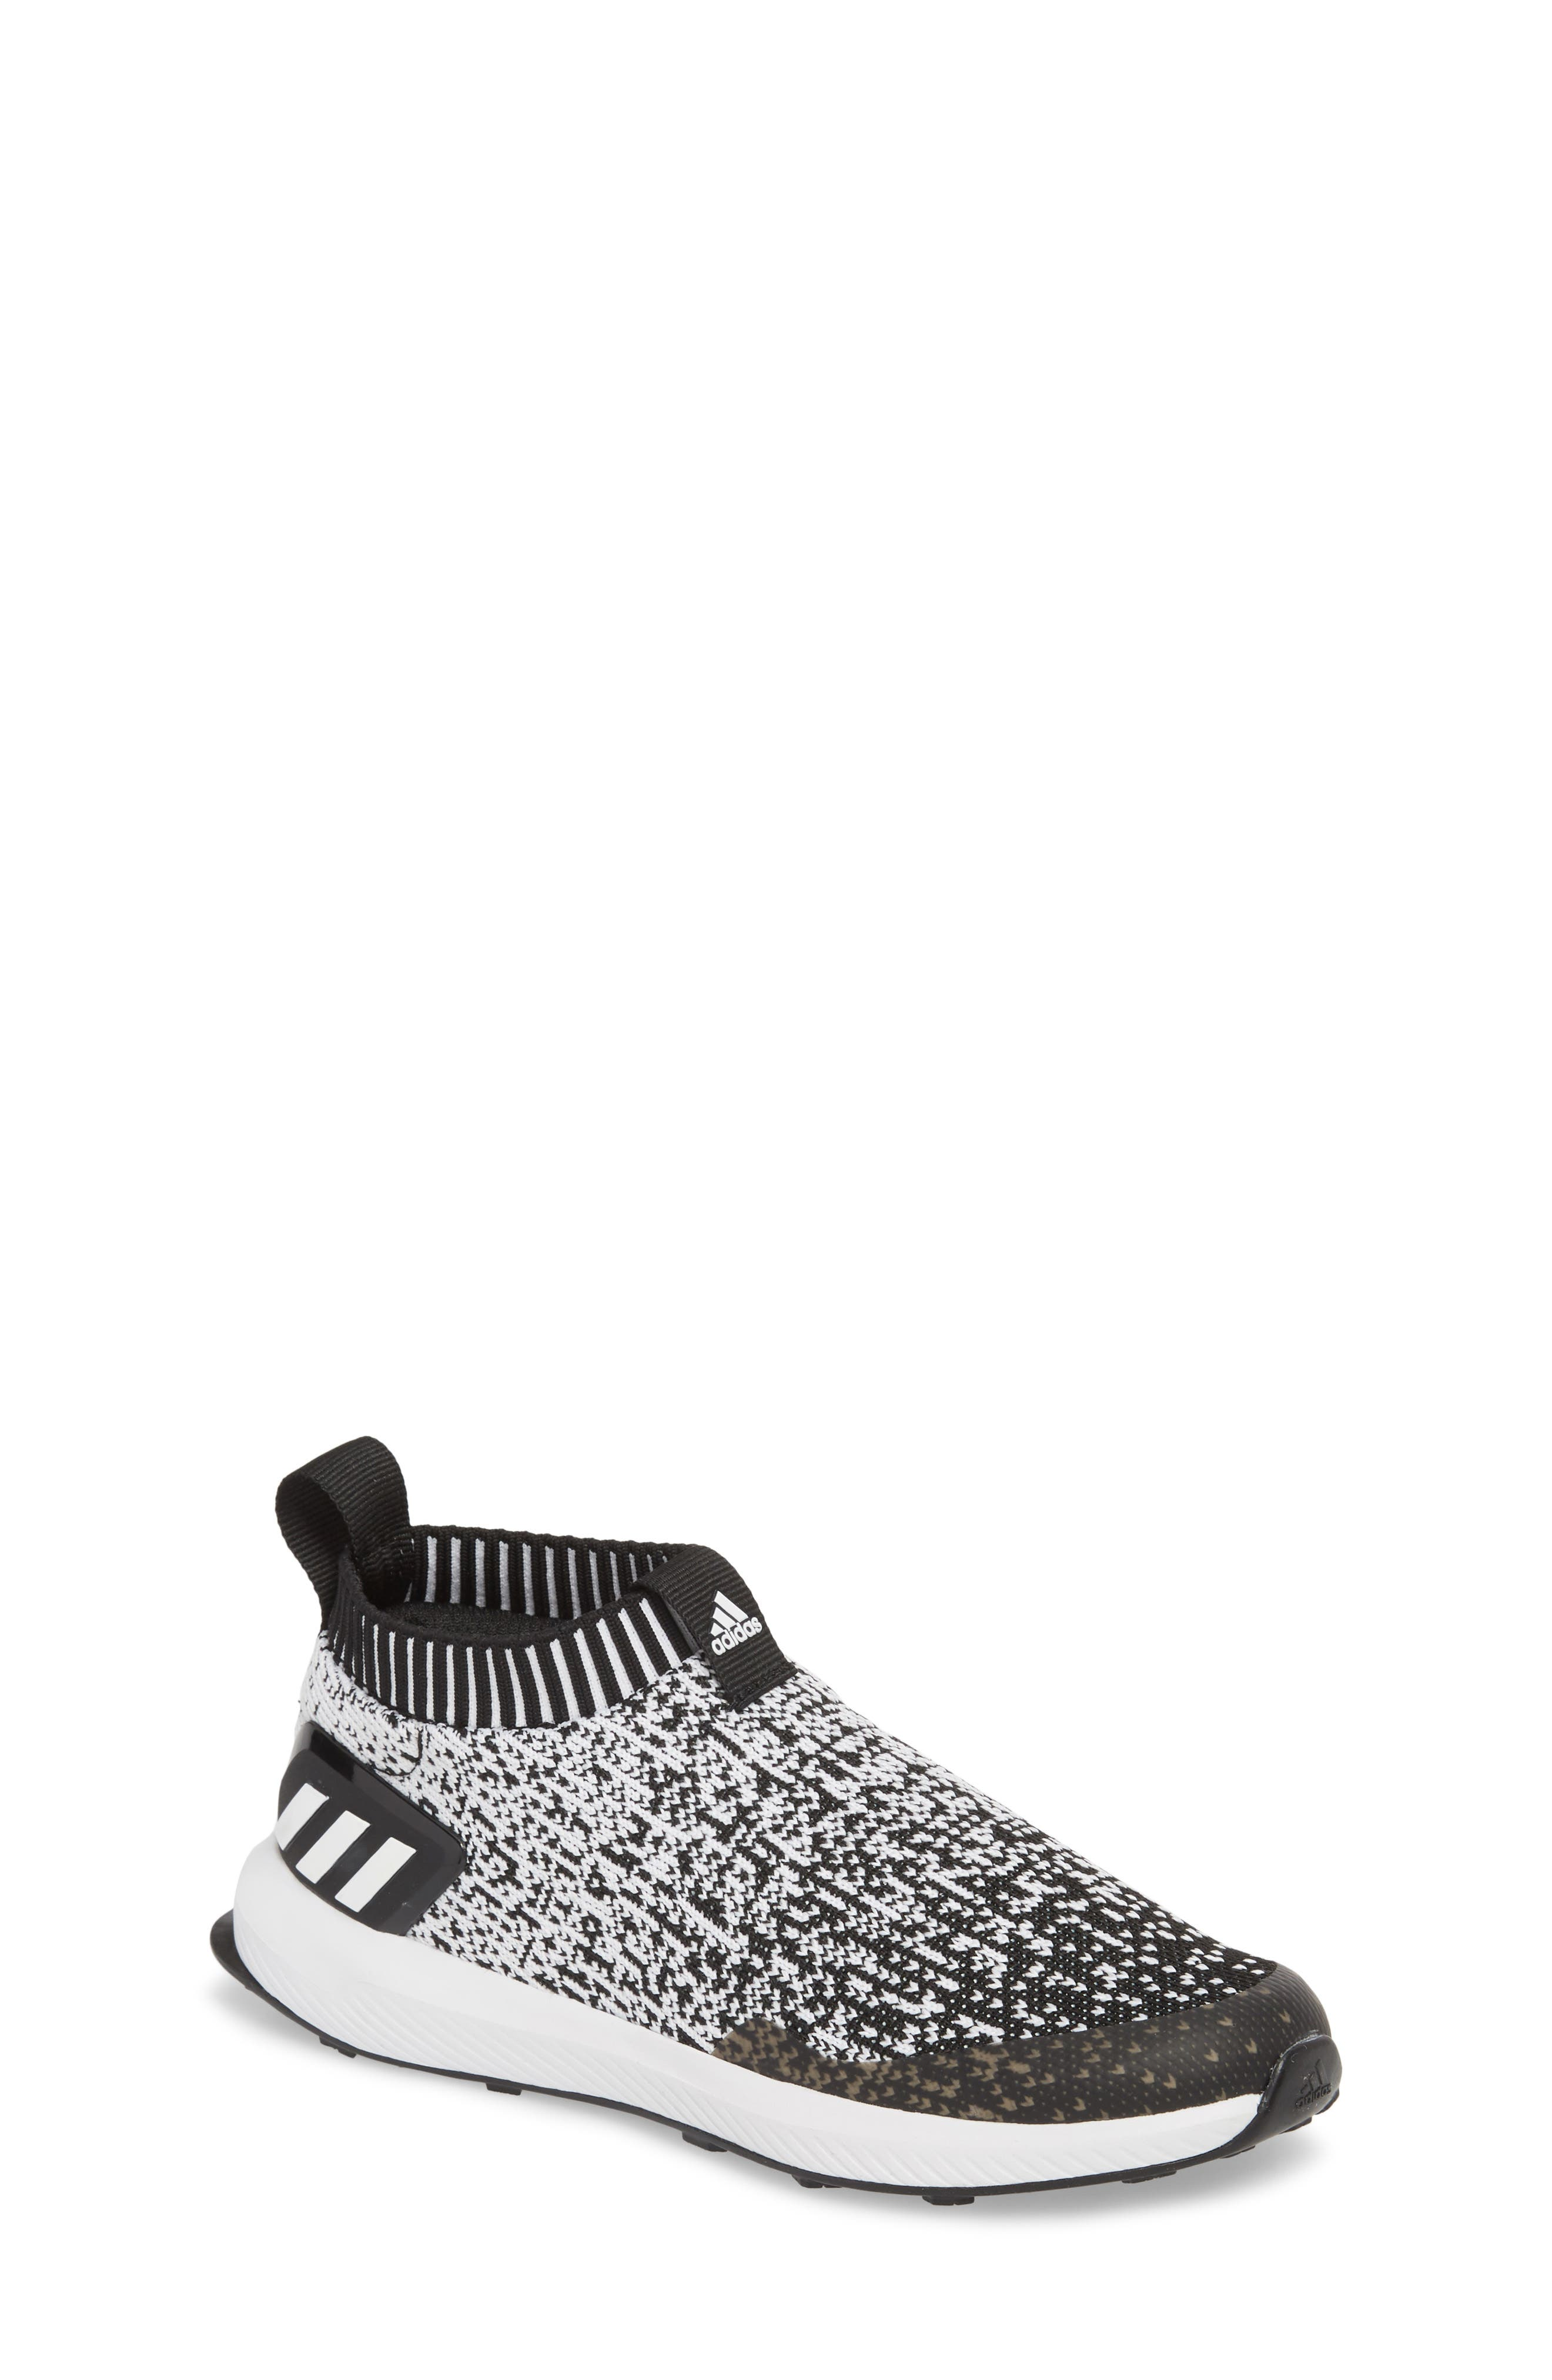 RapidaRun Laceless Knit Sneaker,                             Main thumbnail 1, color,                             Black/ White/ Black